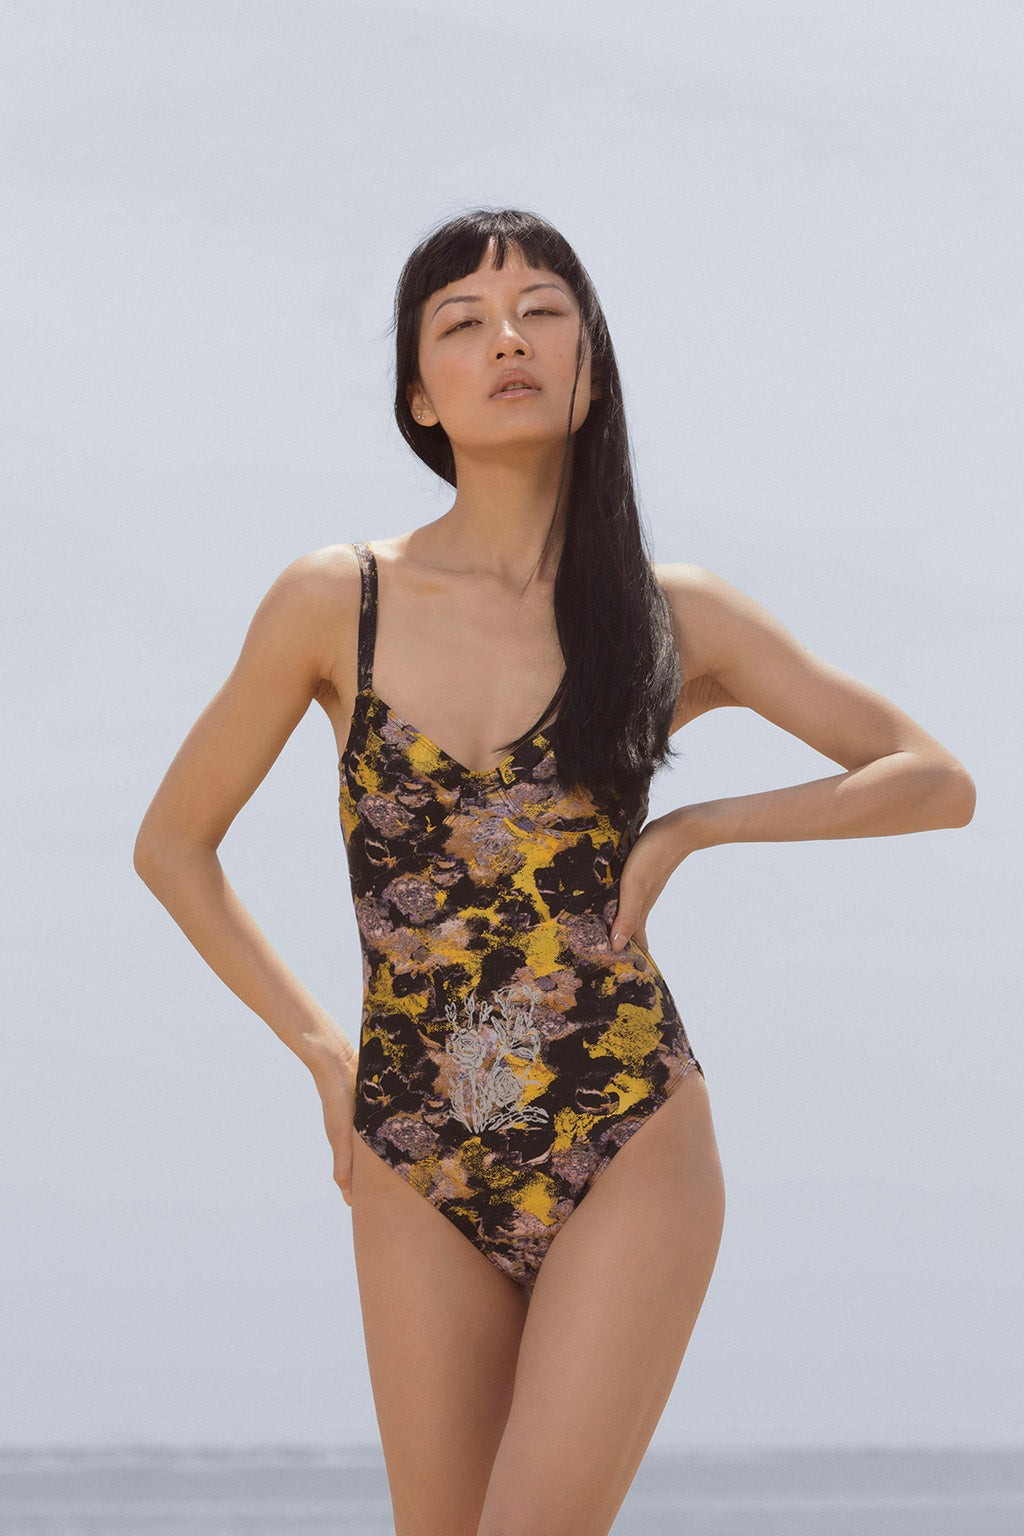 Resort Surf & Swim 2019 Collection look 2 features a swimsuit in a neon color block print